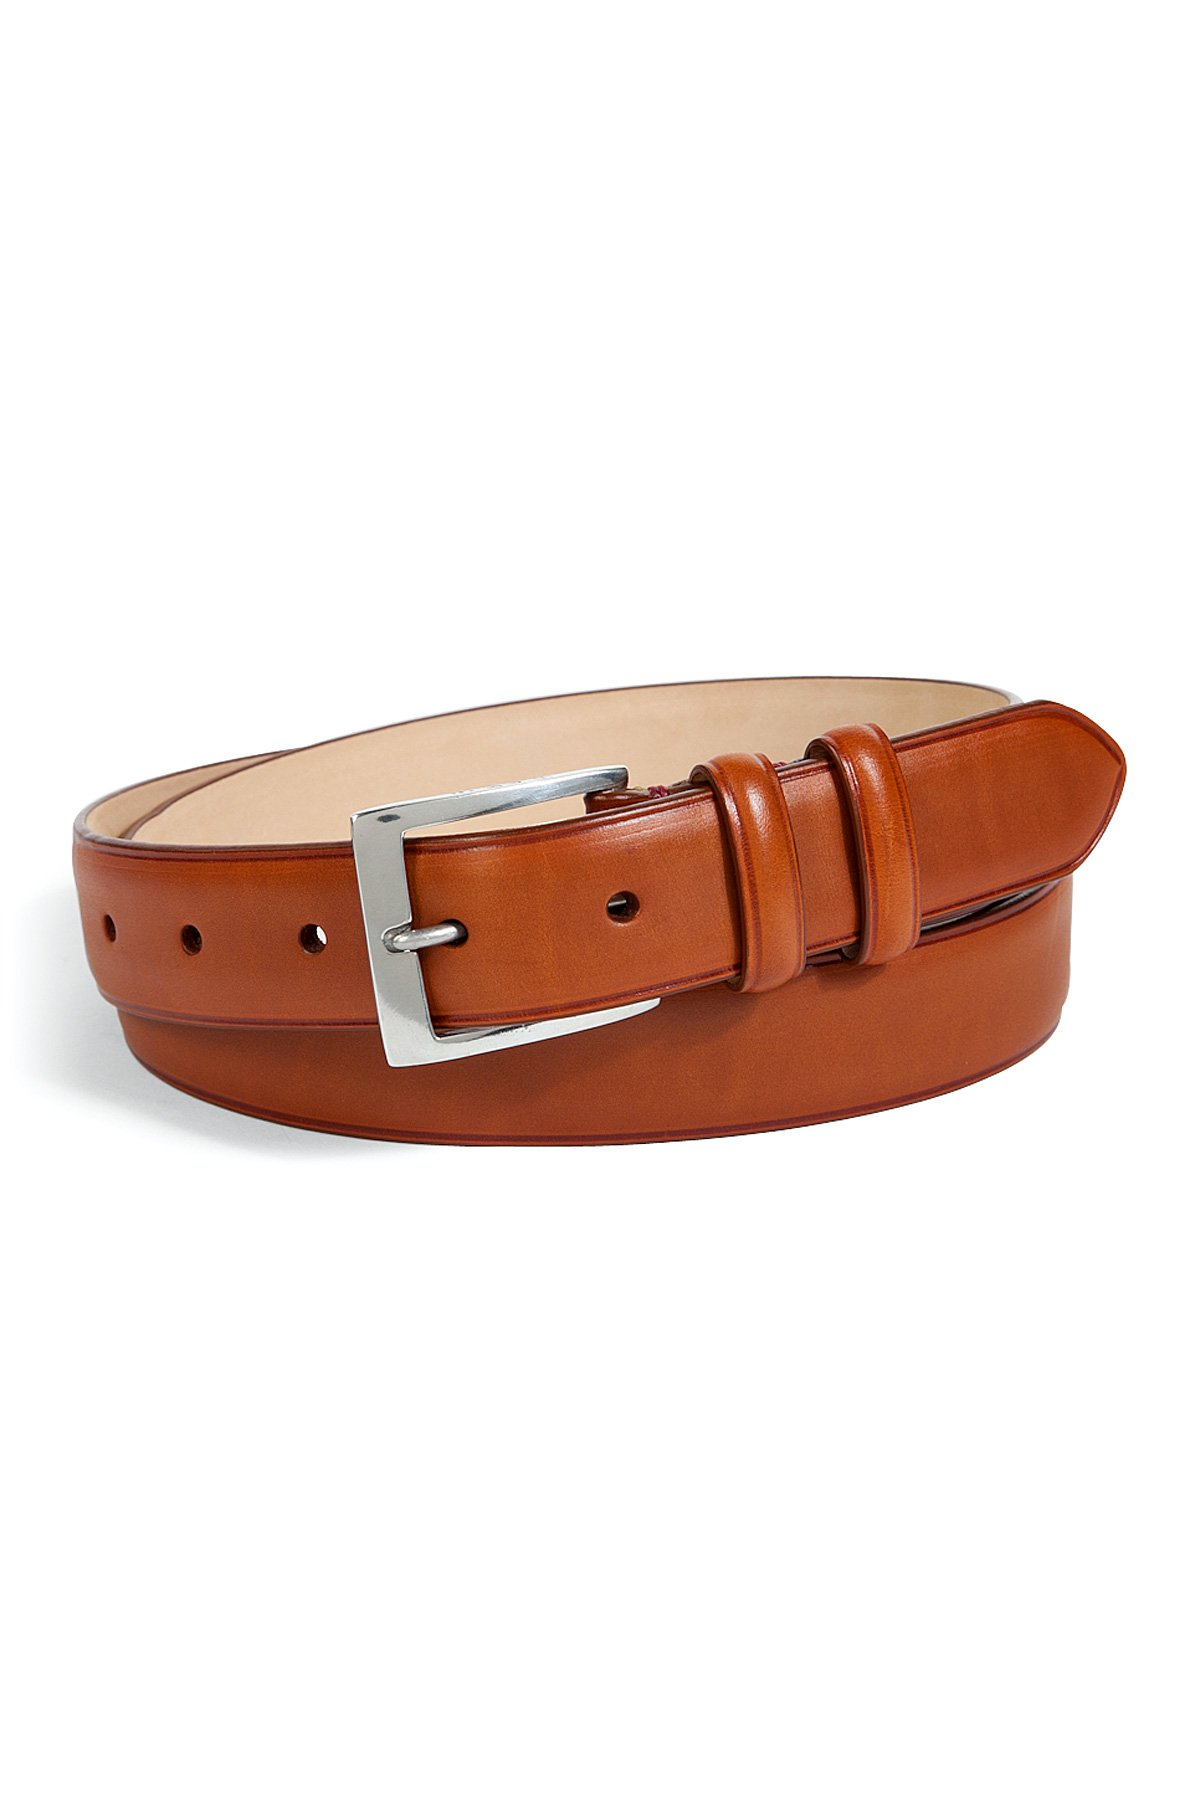 paul smith leather classic suit belt in brown for lyst